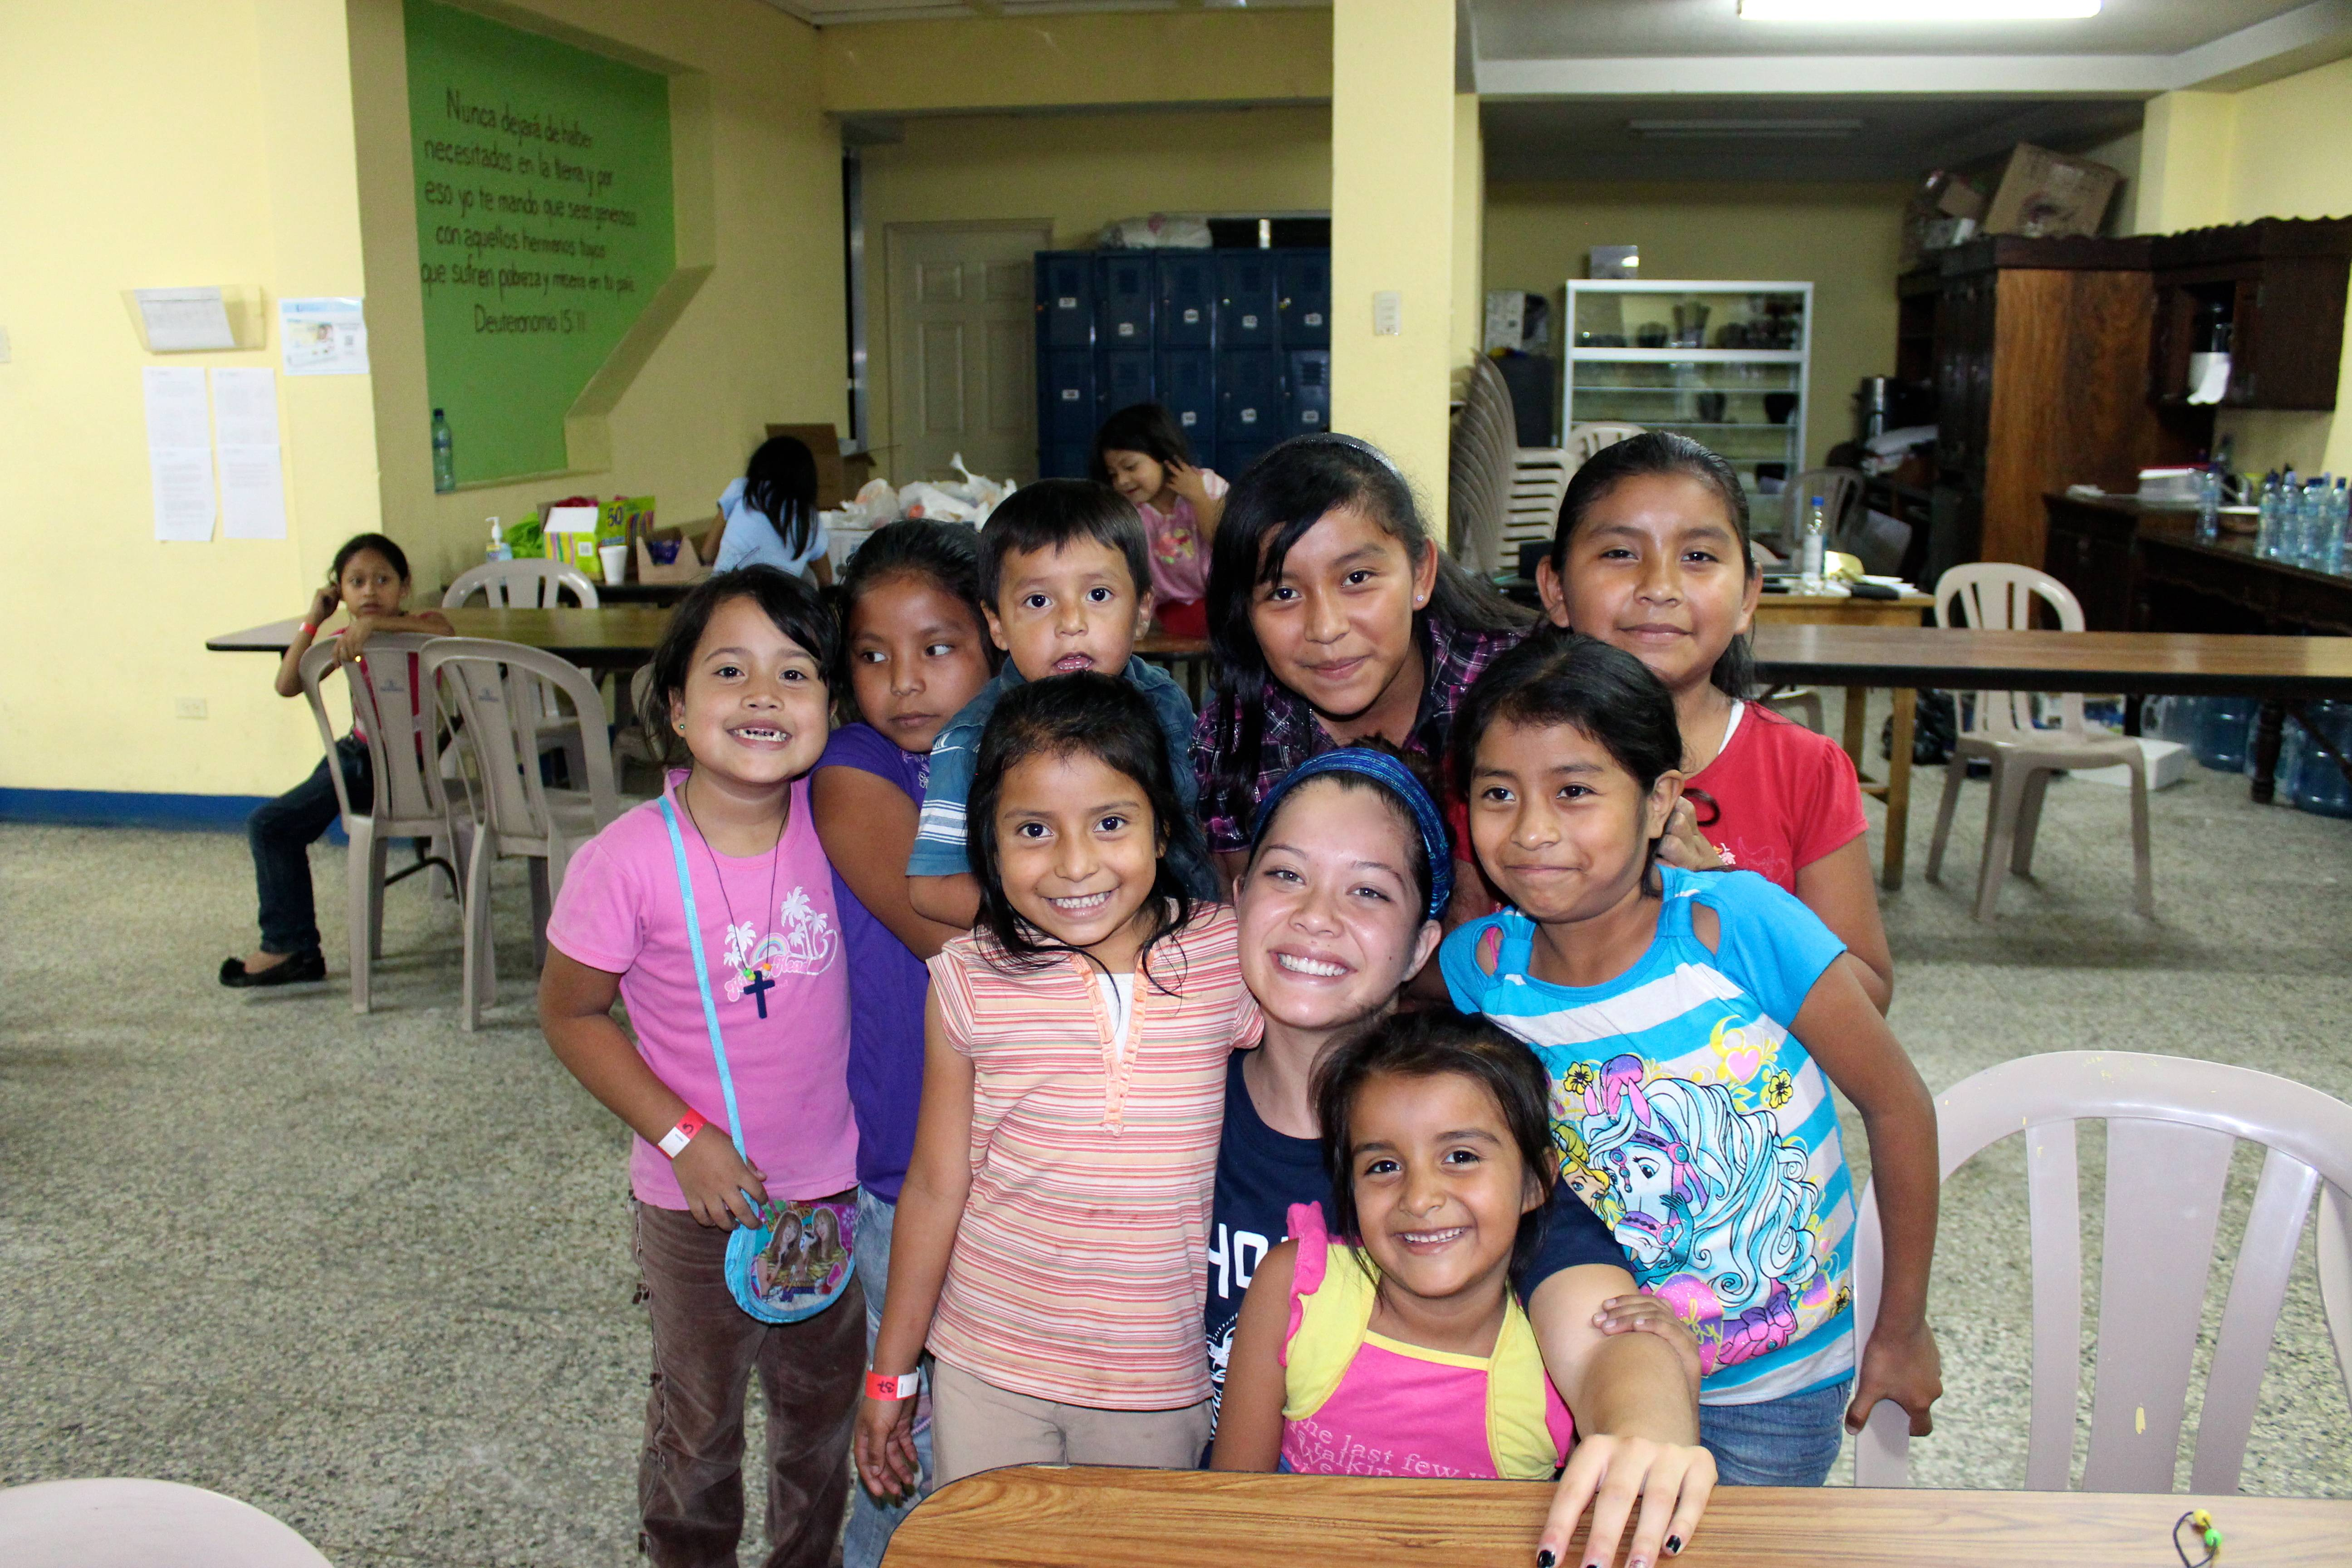 Twin sisters Courtney, center in blue headband, and Ashley Quigley traveled to Guatemala last year to help build a home for a needy family. The 17-year-old Barrington High School seniors are the organizers of a fashion show in Barrington that benefits families and children in Guatemala.